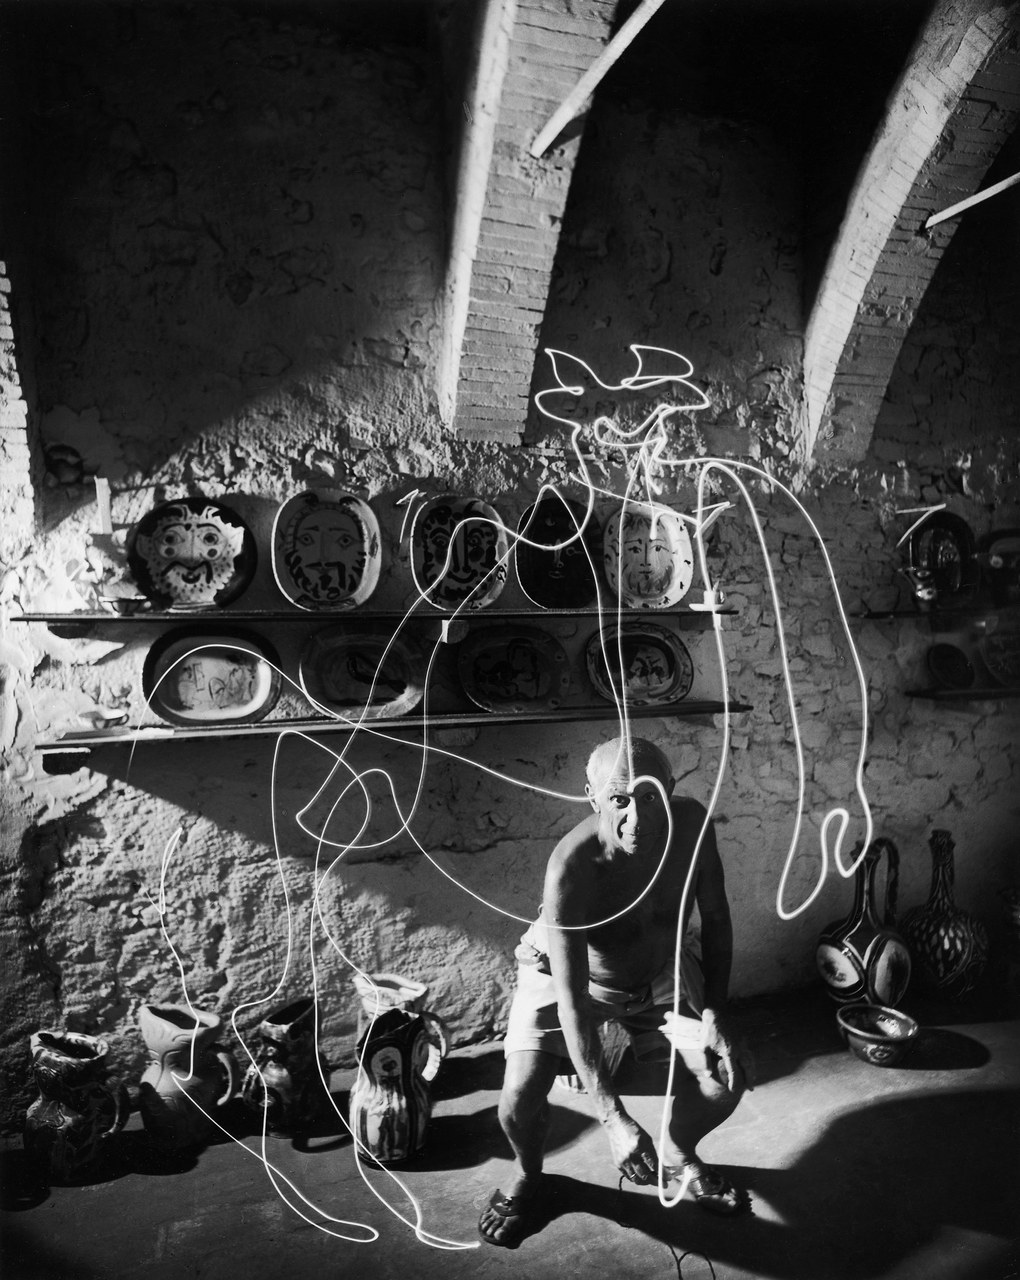 Picasso drawing with light, ©Gjon Mili in 1949